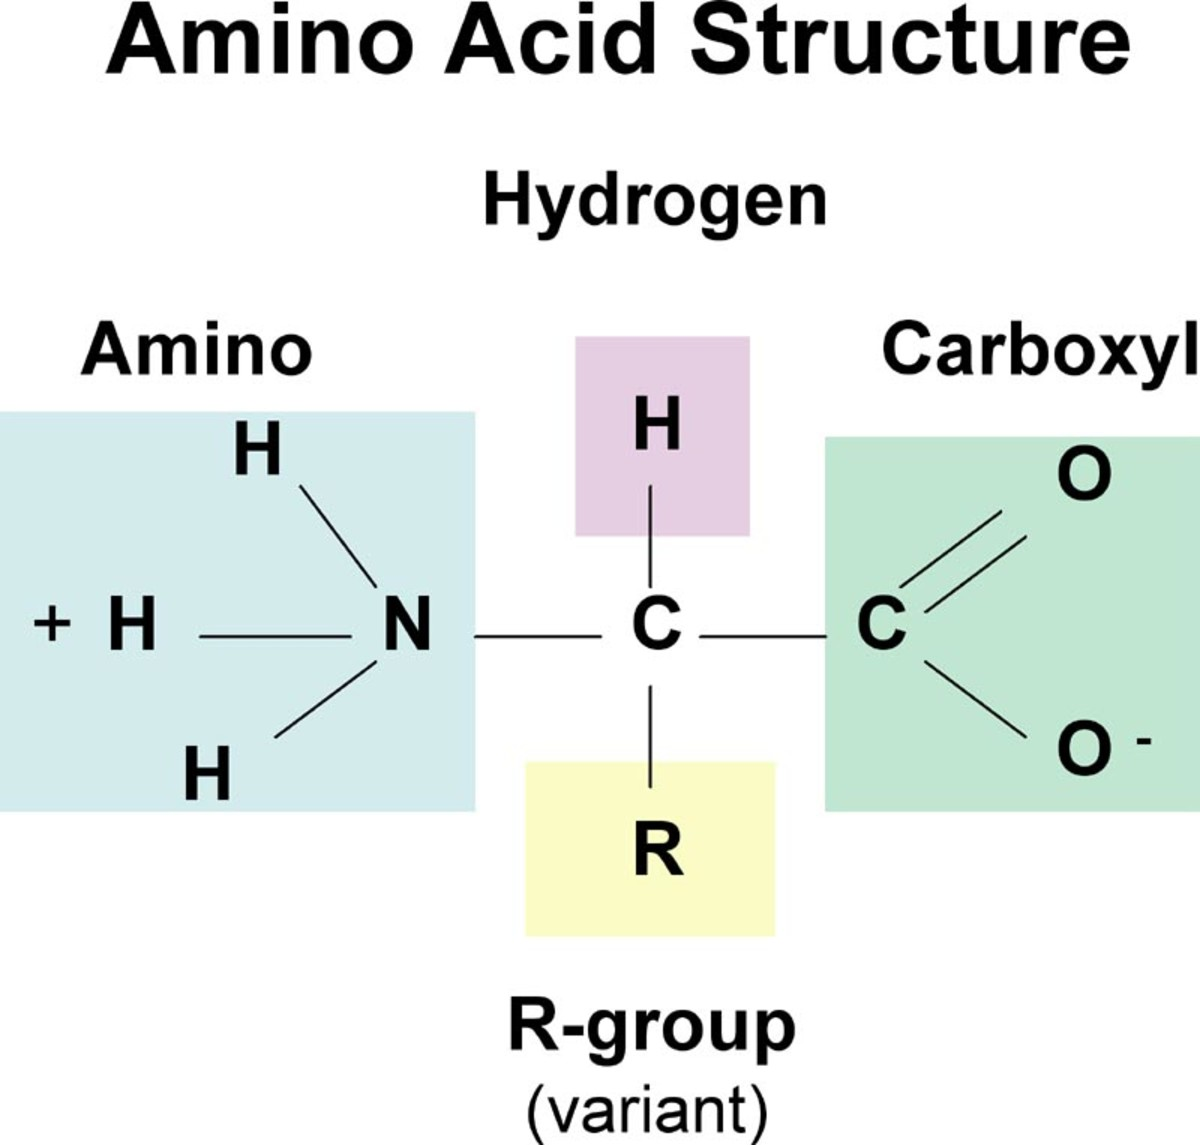 Proteins are polymers made up of strings of amino acid joined by peptide bonds